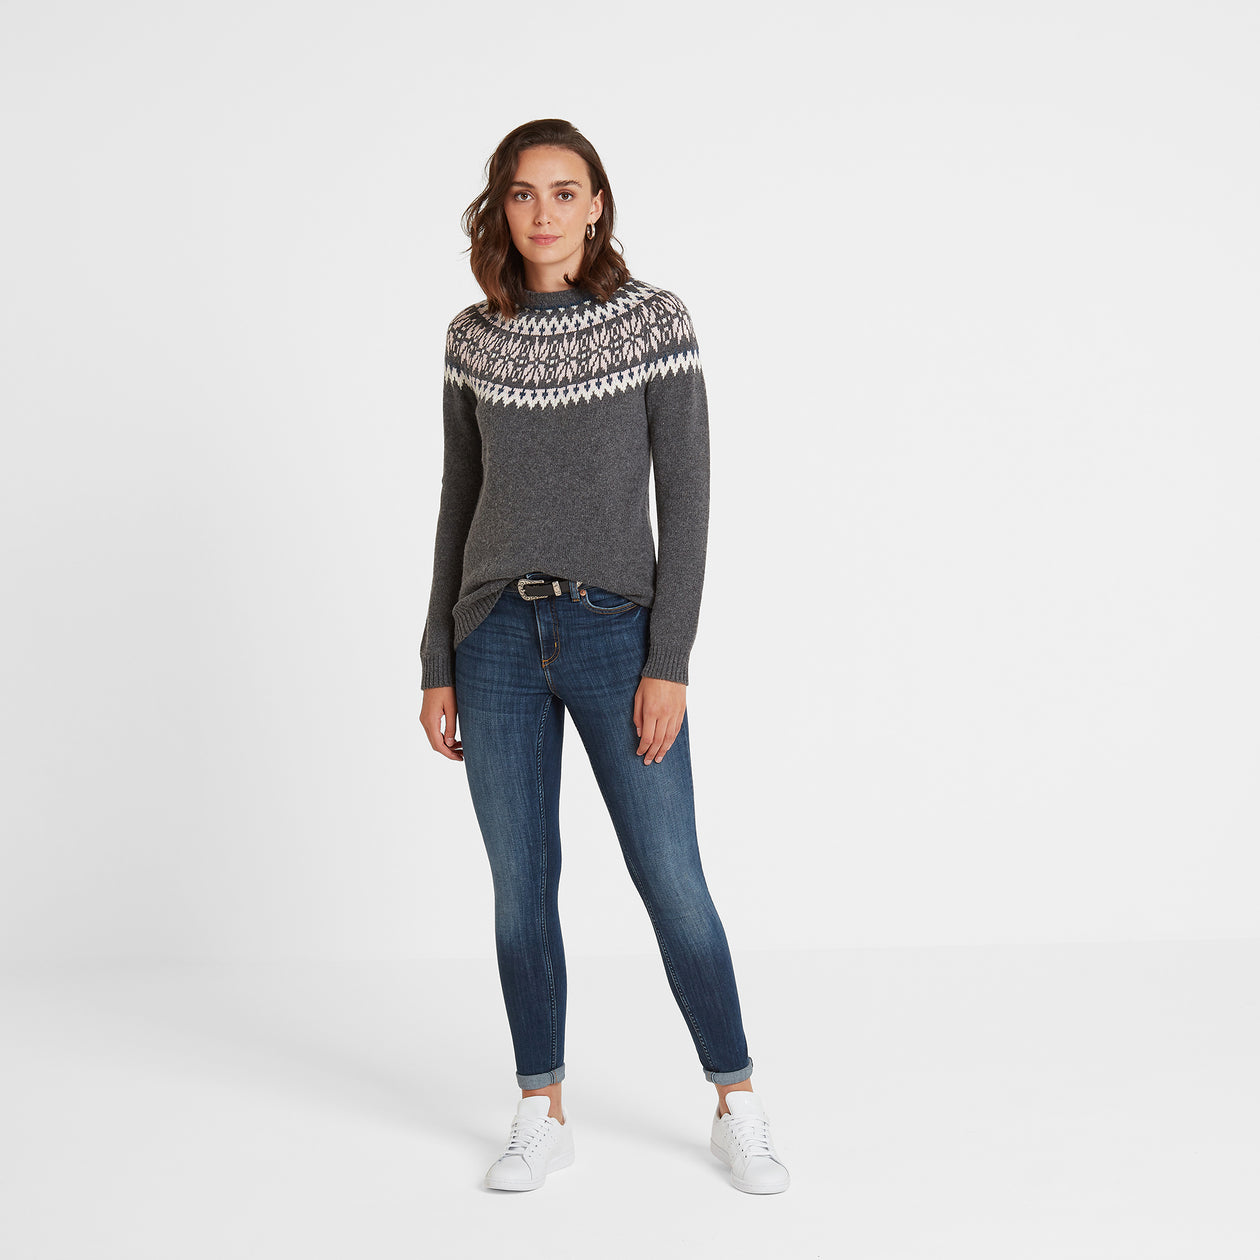 Sadie Womens Fairisle/Pattern Jumper - Dark Grey Marl image 4